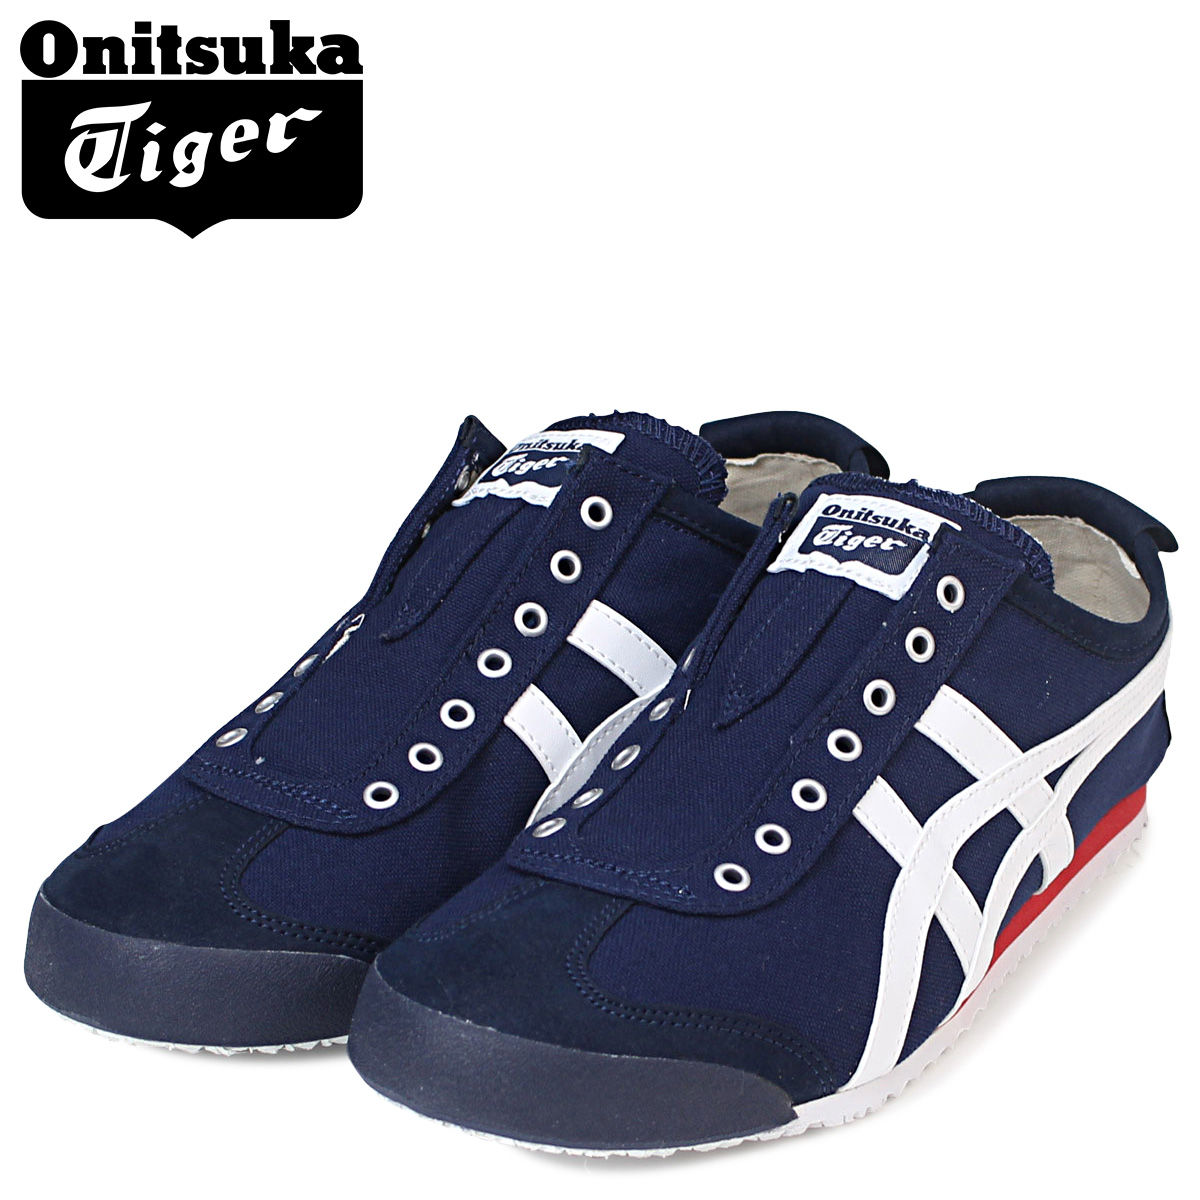 save off 84b66 26b3c Onitsuka Tiger MEXICO 66 SLIP ON Onitsuka tiger Mexico 66 slip-ons men gap  Dis sneakers D3K0N 5099 navy [8/1 reentry load] [197]